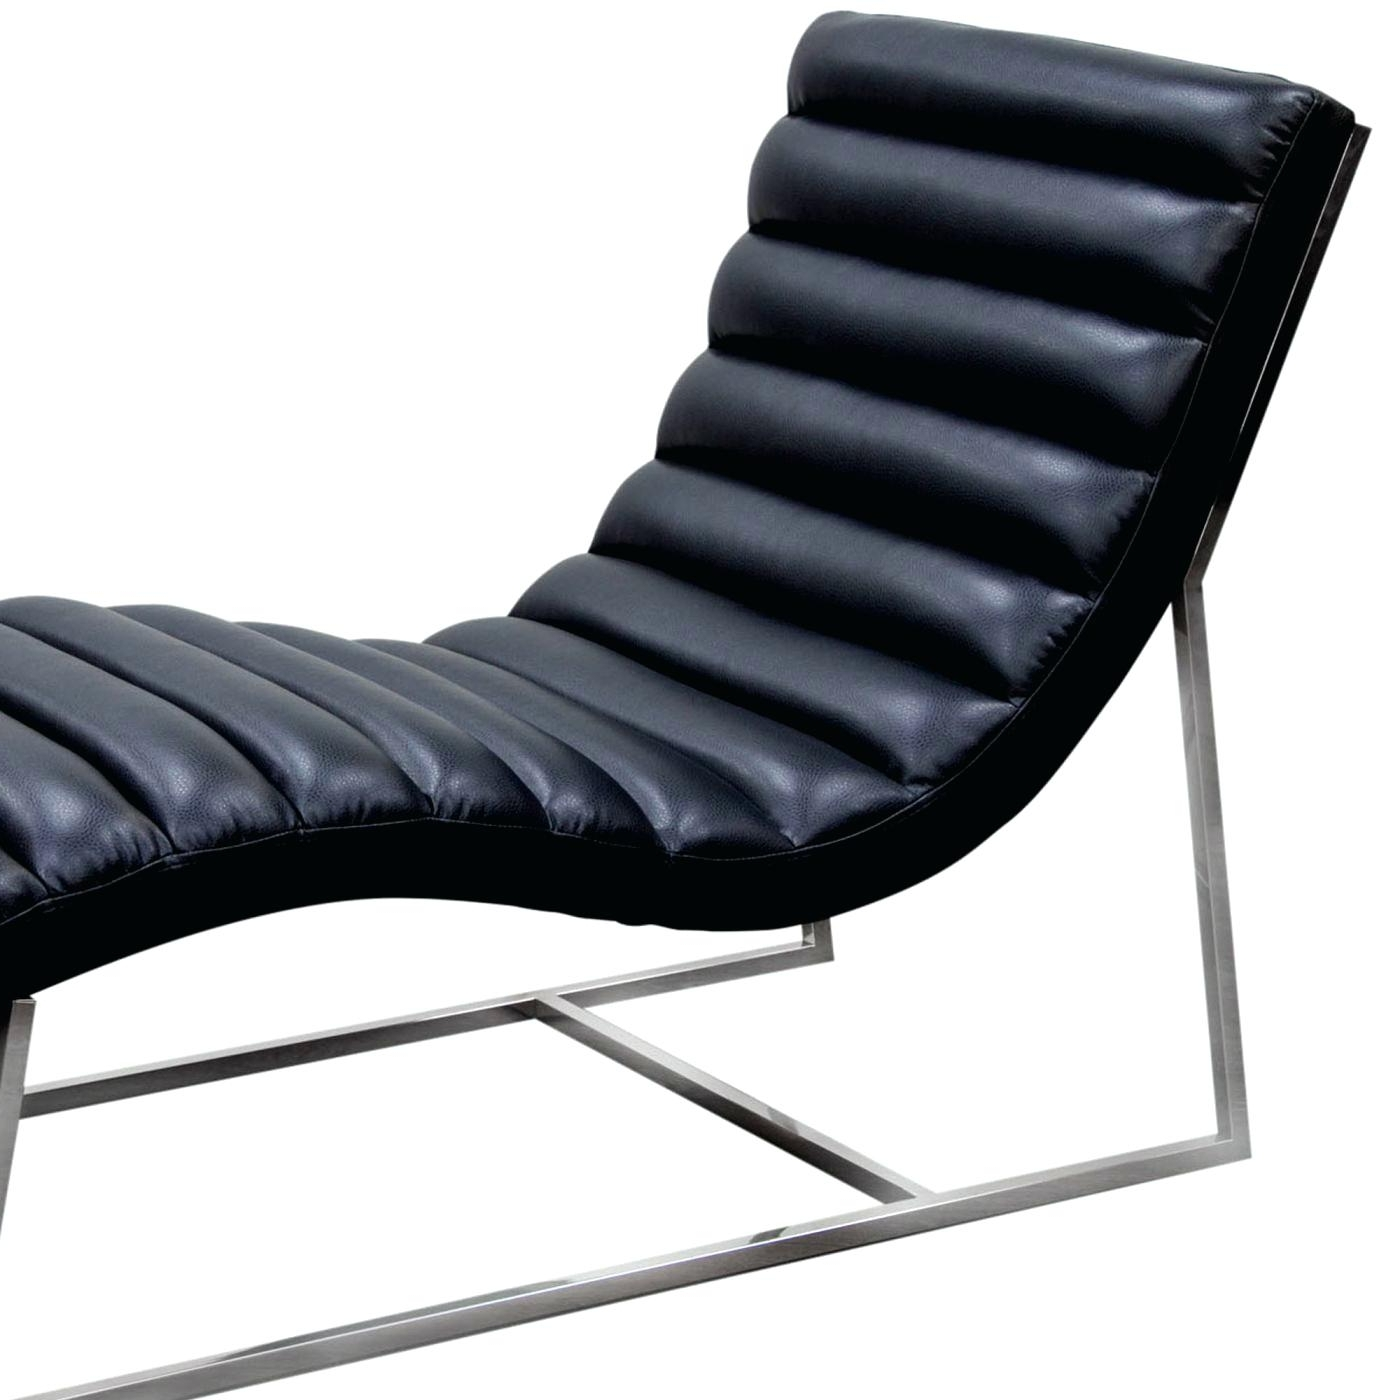 Black Chaise Iron Lounge Chairs Sofa Outdoor – Nikeaf1 In Favorite Damask Chaise Lounge Chairs (View 3 of 15)